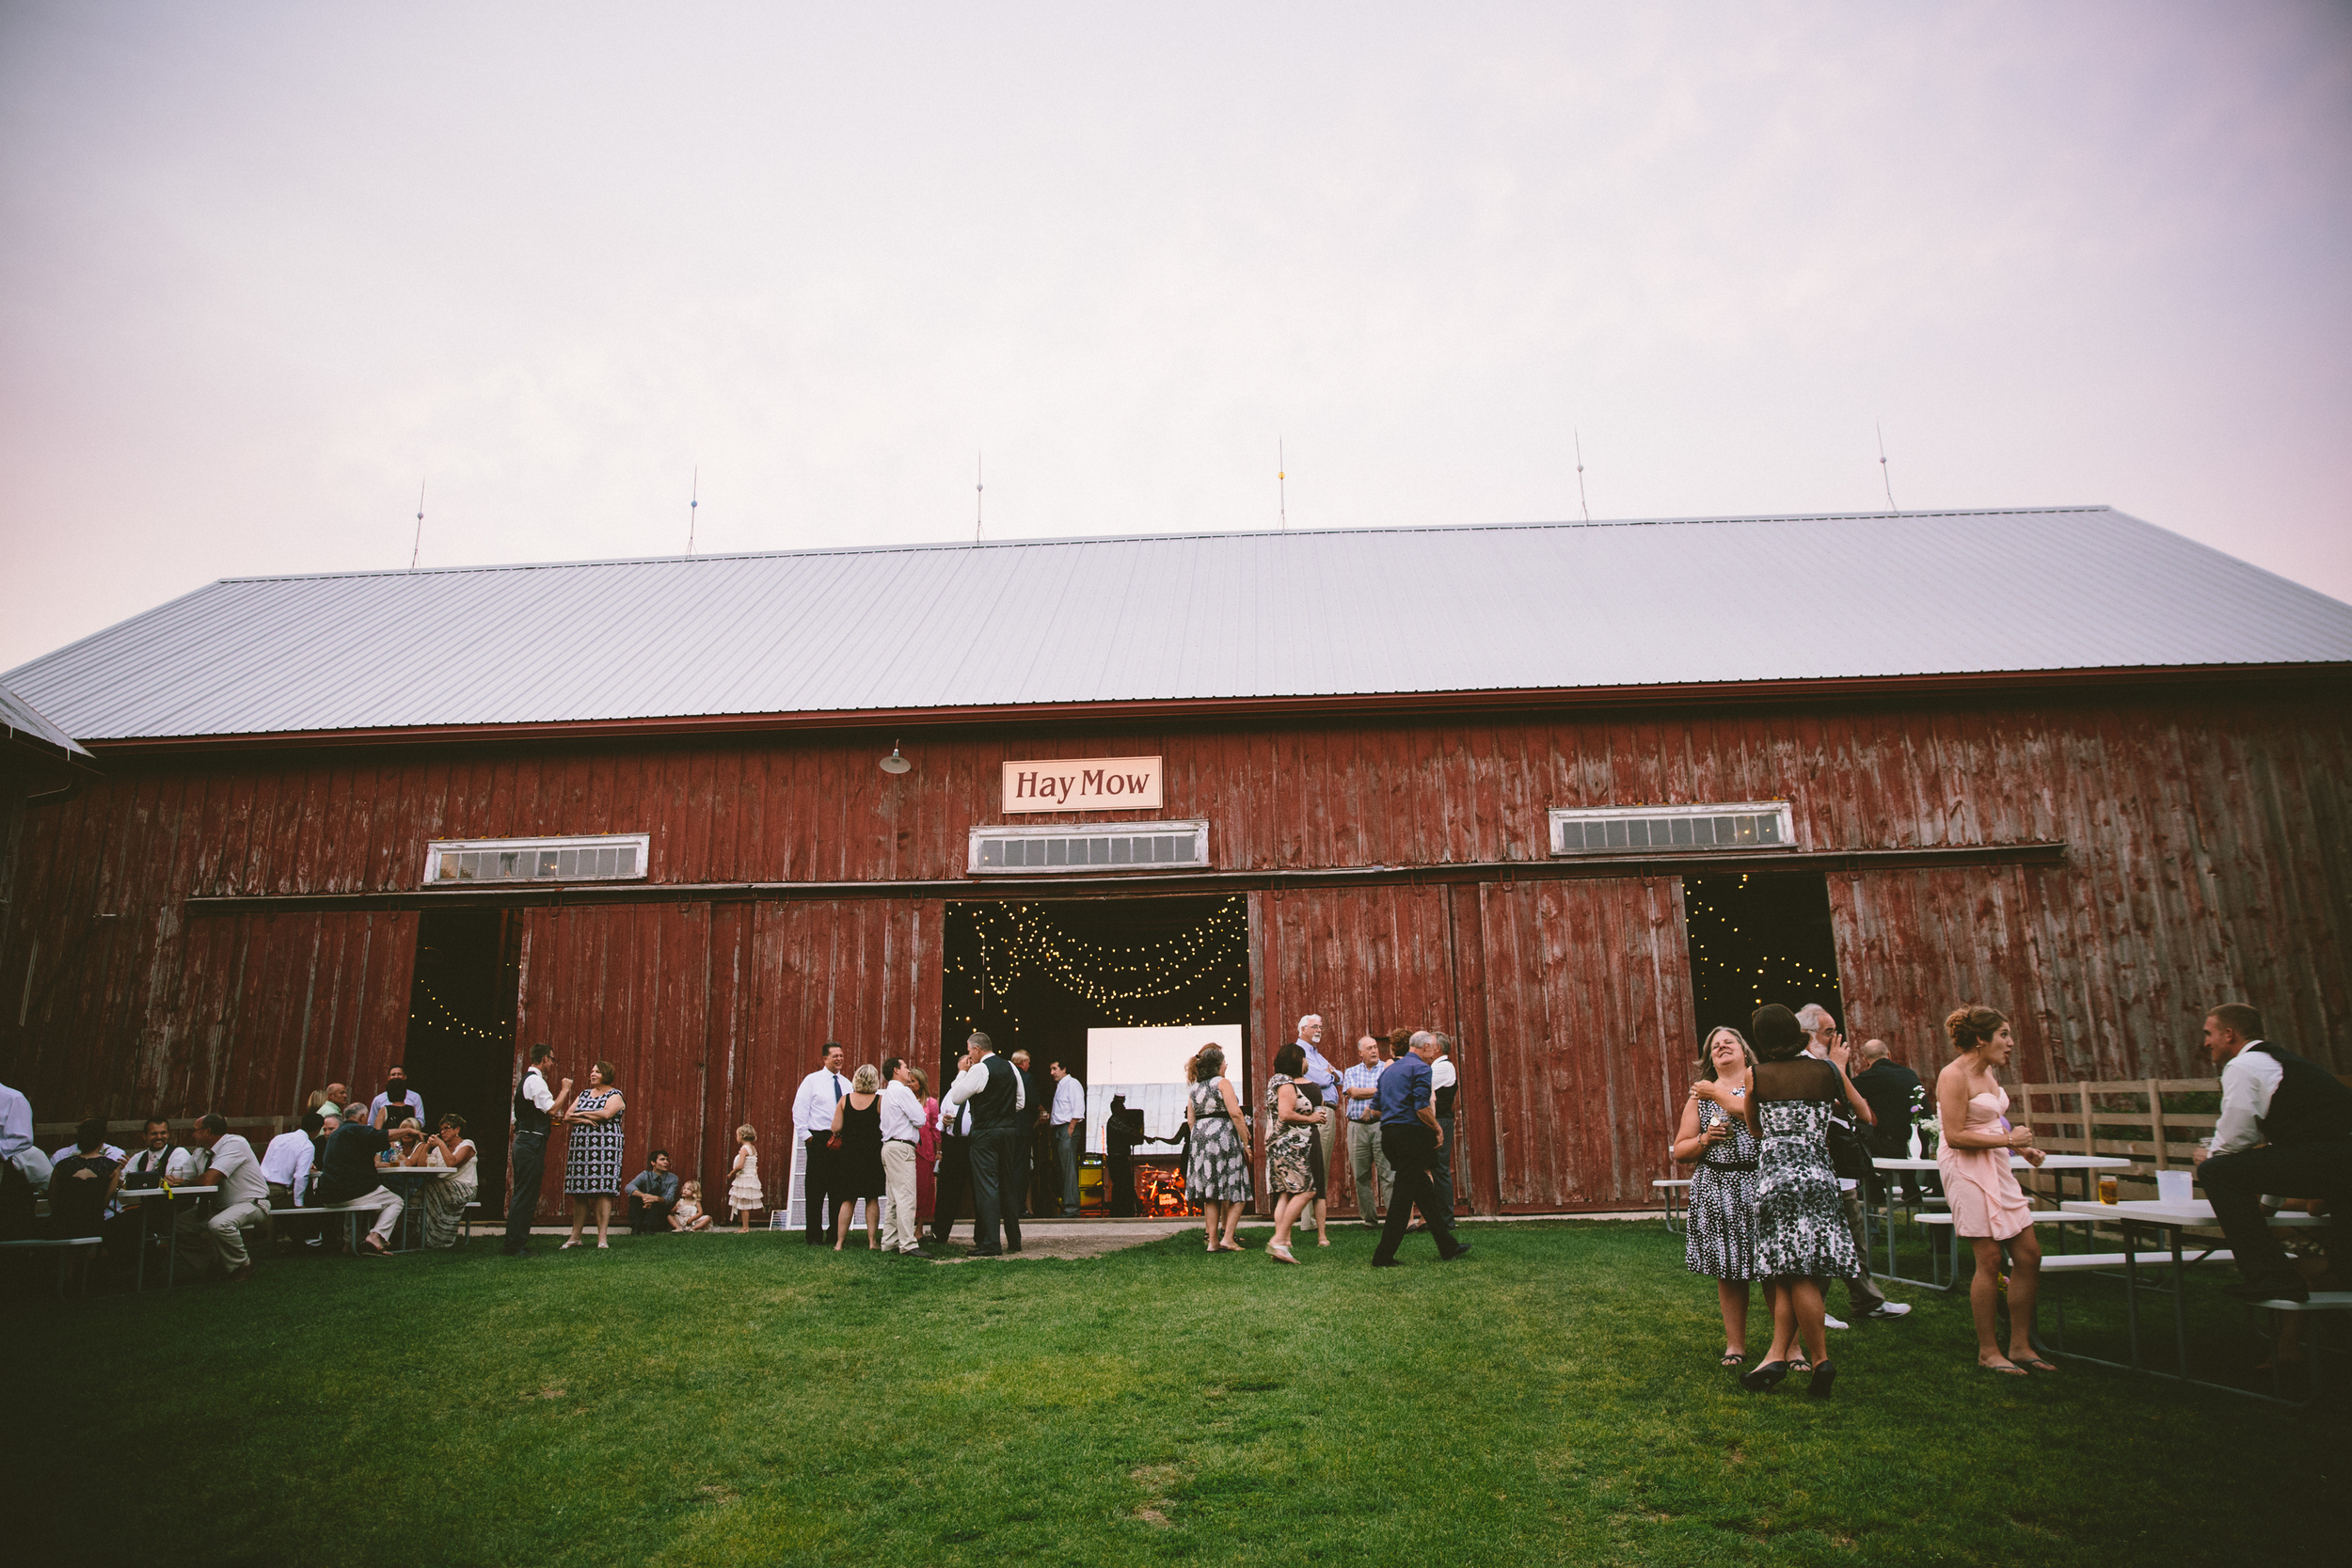 Mulberry Lane Farm Wedding: Meg + Paul // The Overwhelmed Bride Wedding Blog + Southern California Wedding Planner